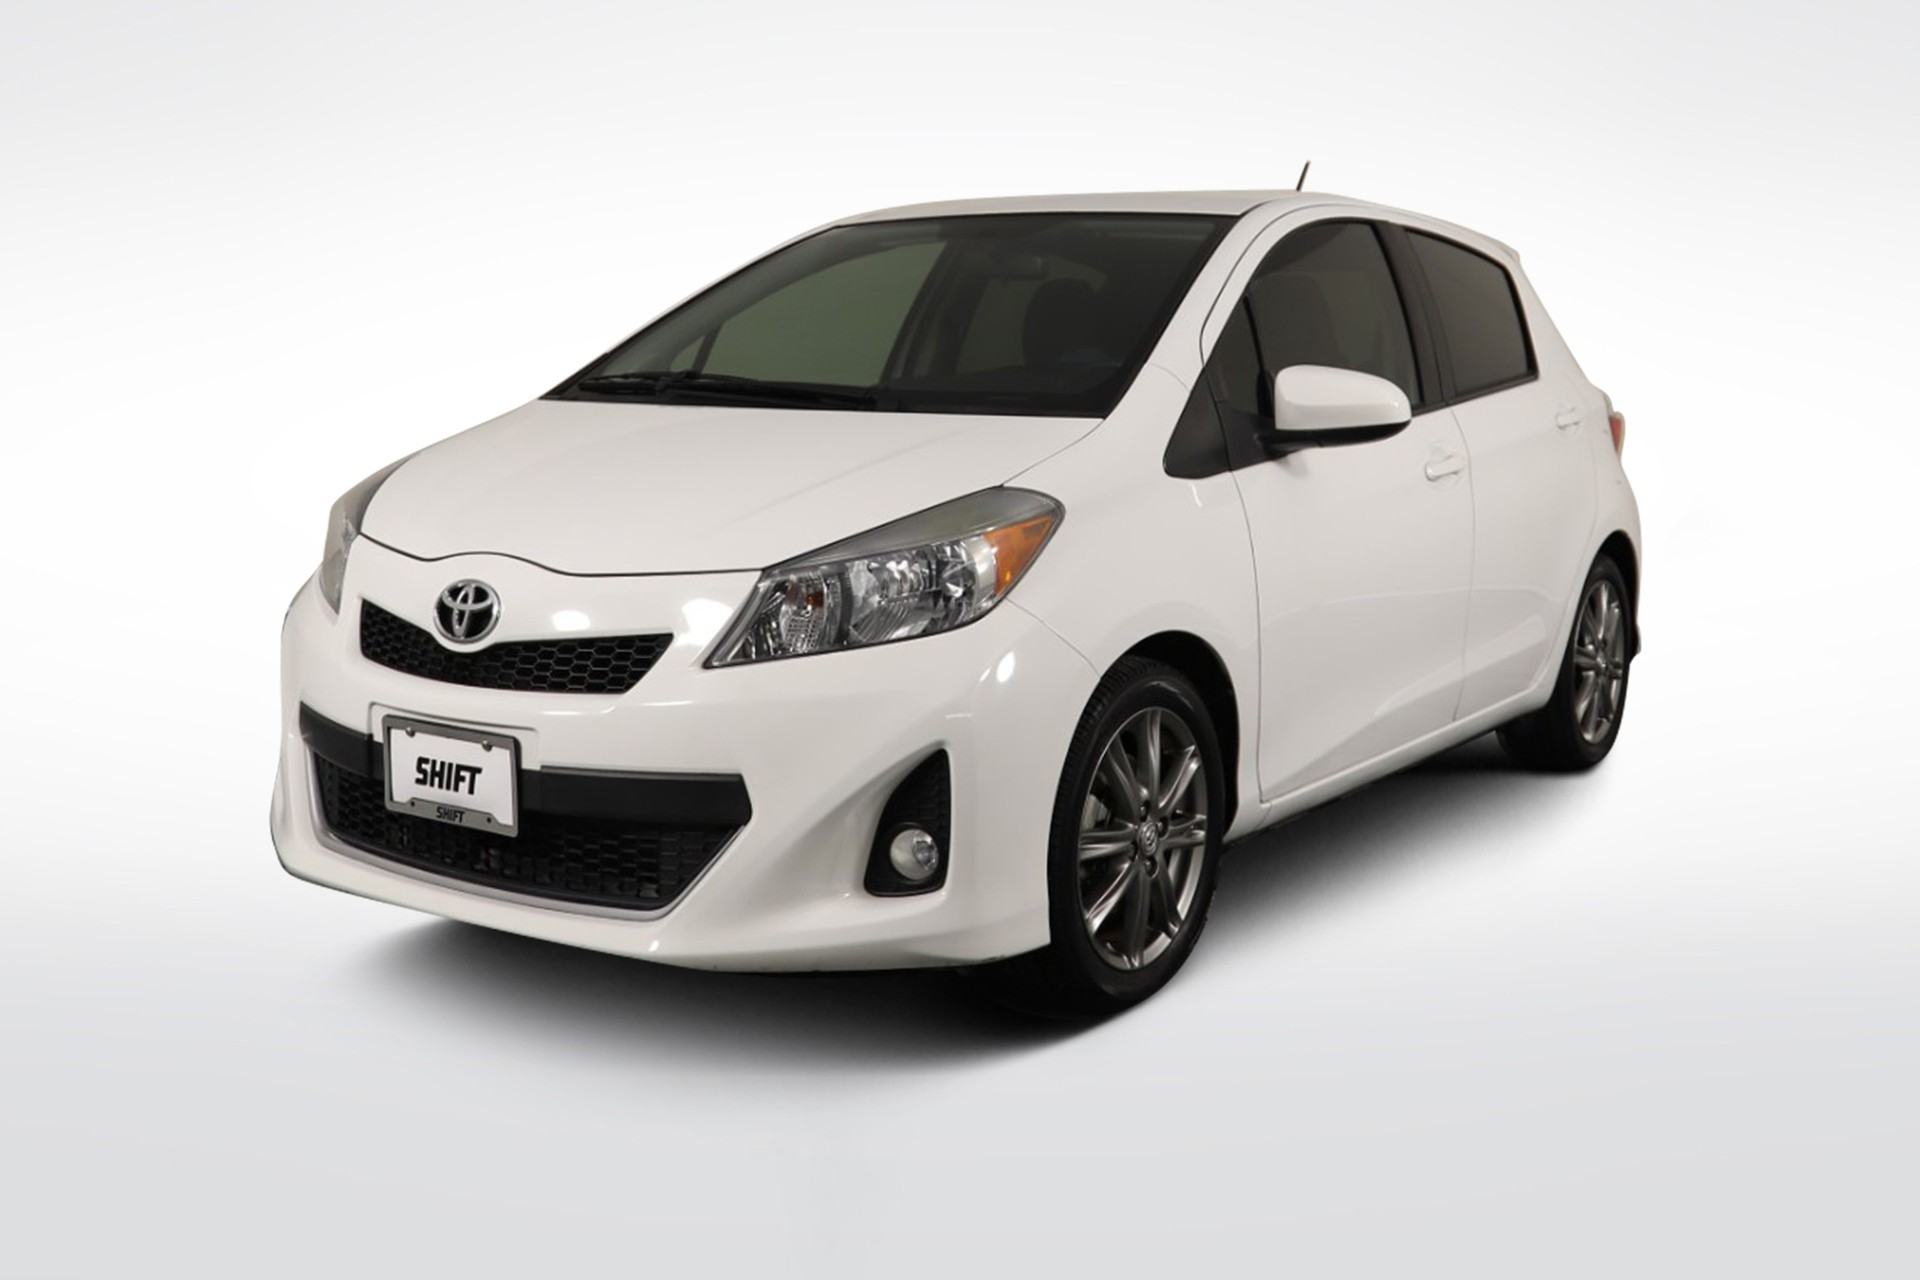 2014 Toyota Yaris SE (from $13,250)